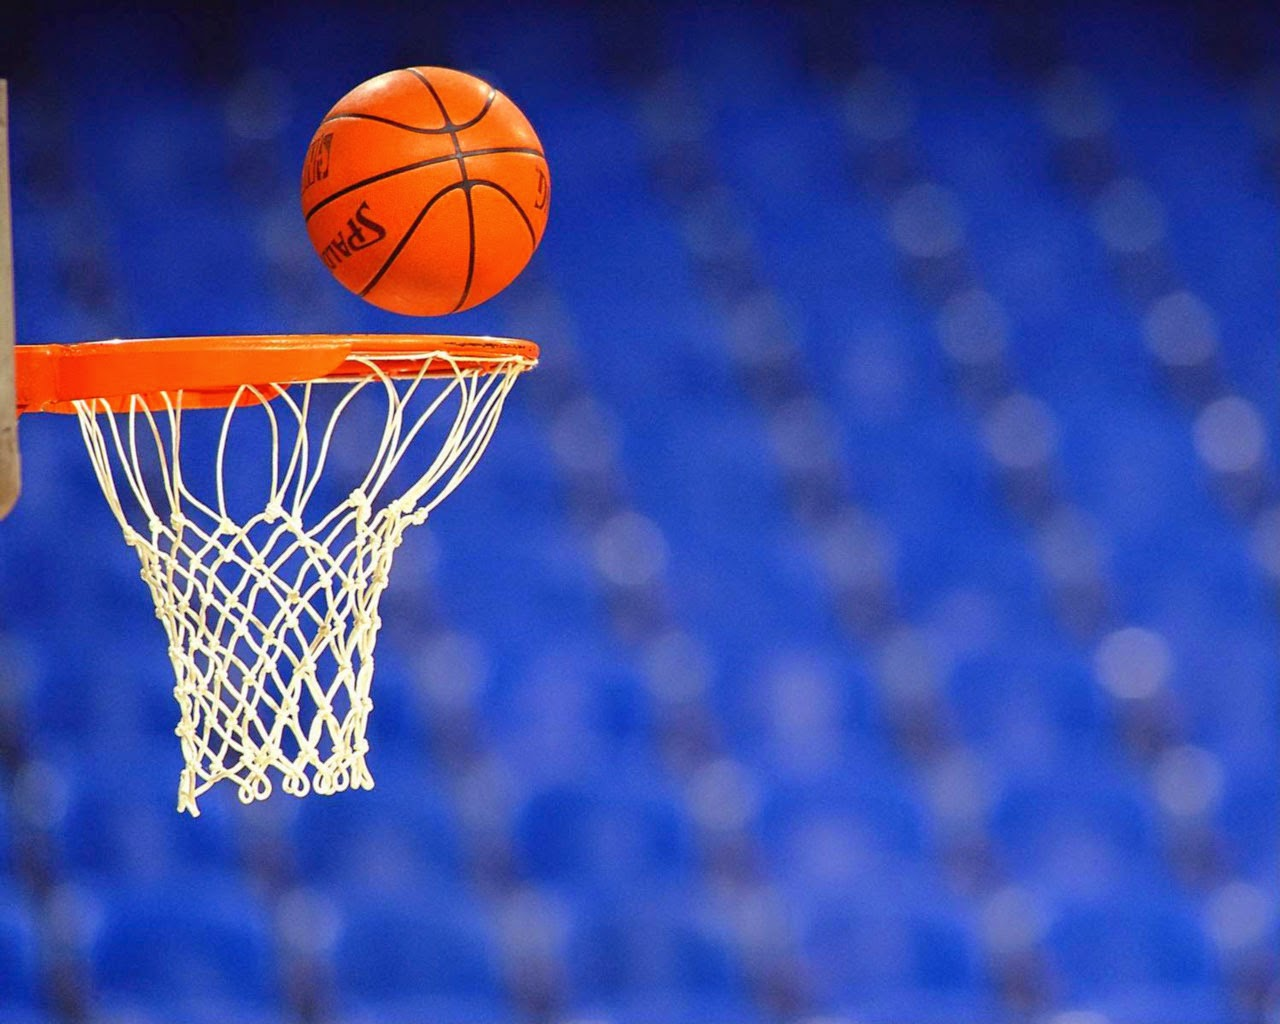 Happy New Year Wallpapers 2016 Basketball Hd